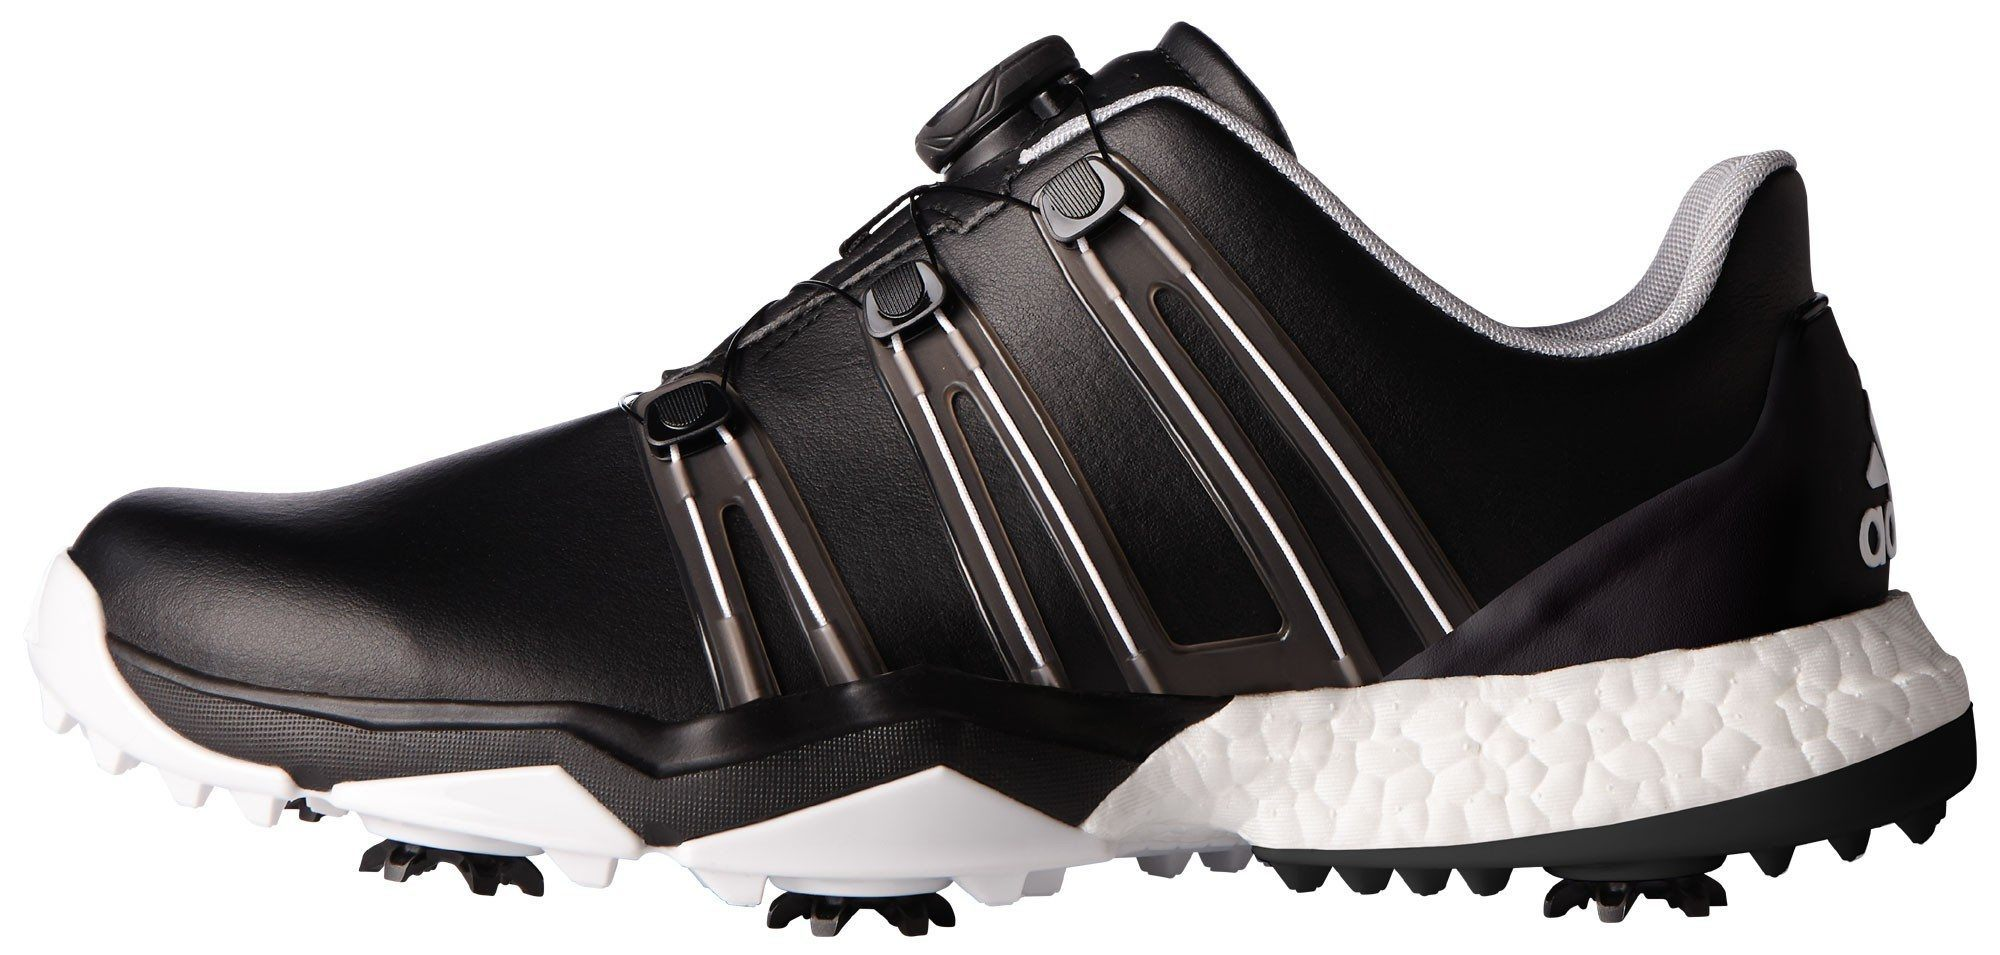 best shoe for junior golfer, www.thejuniorgolfer.com